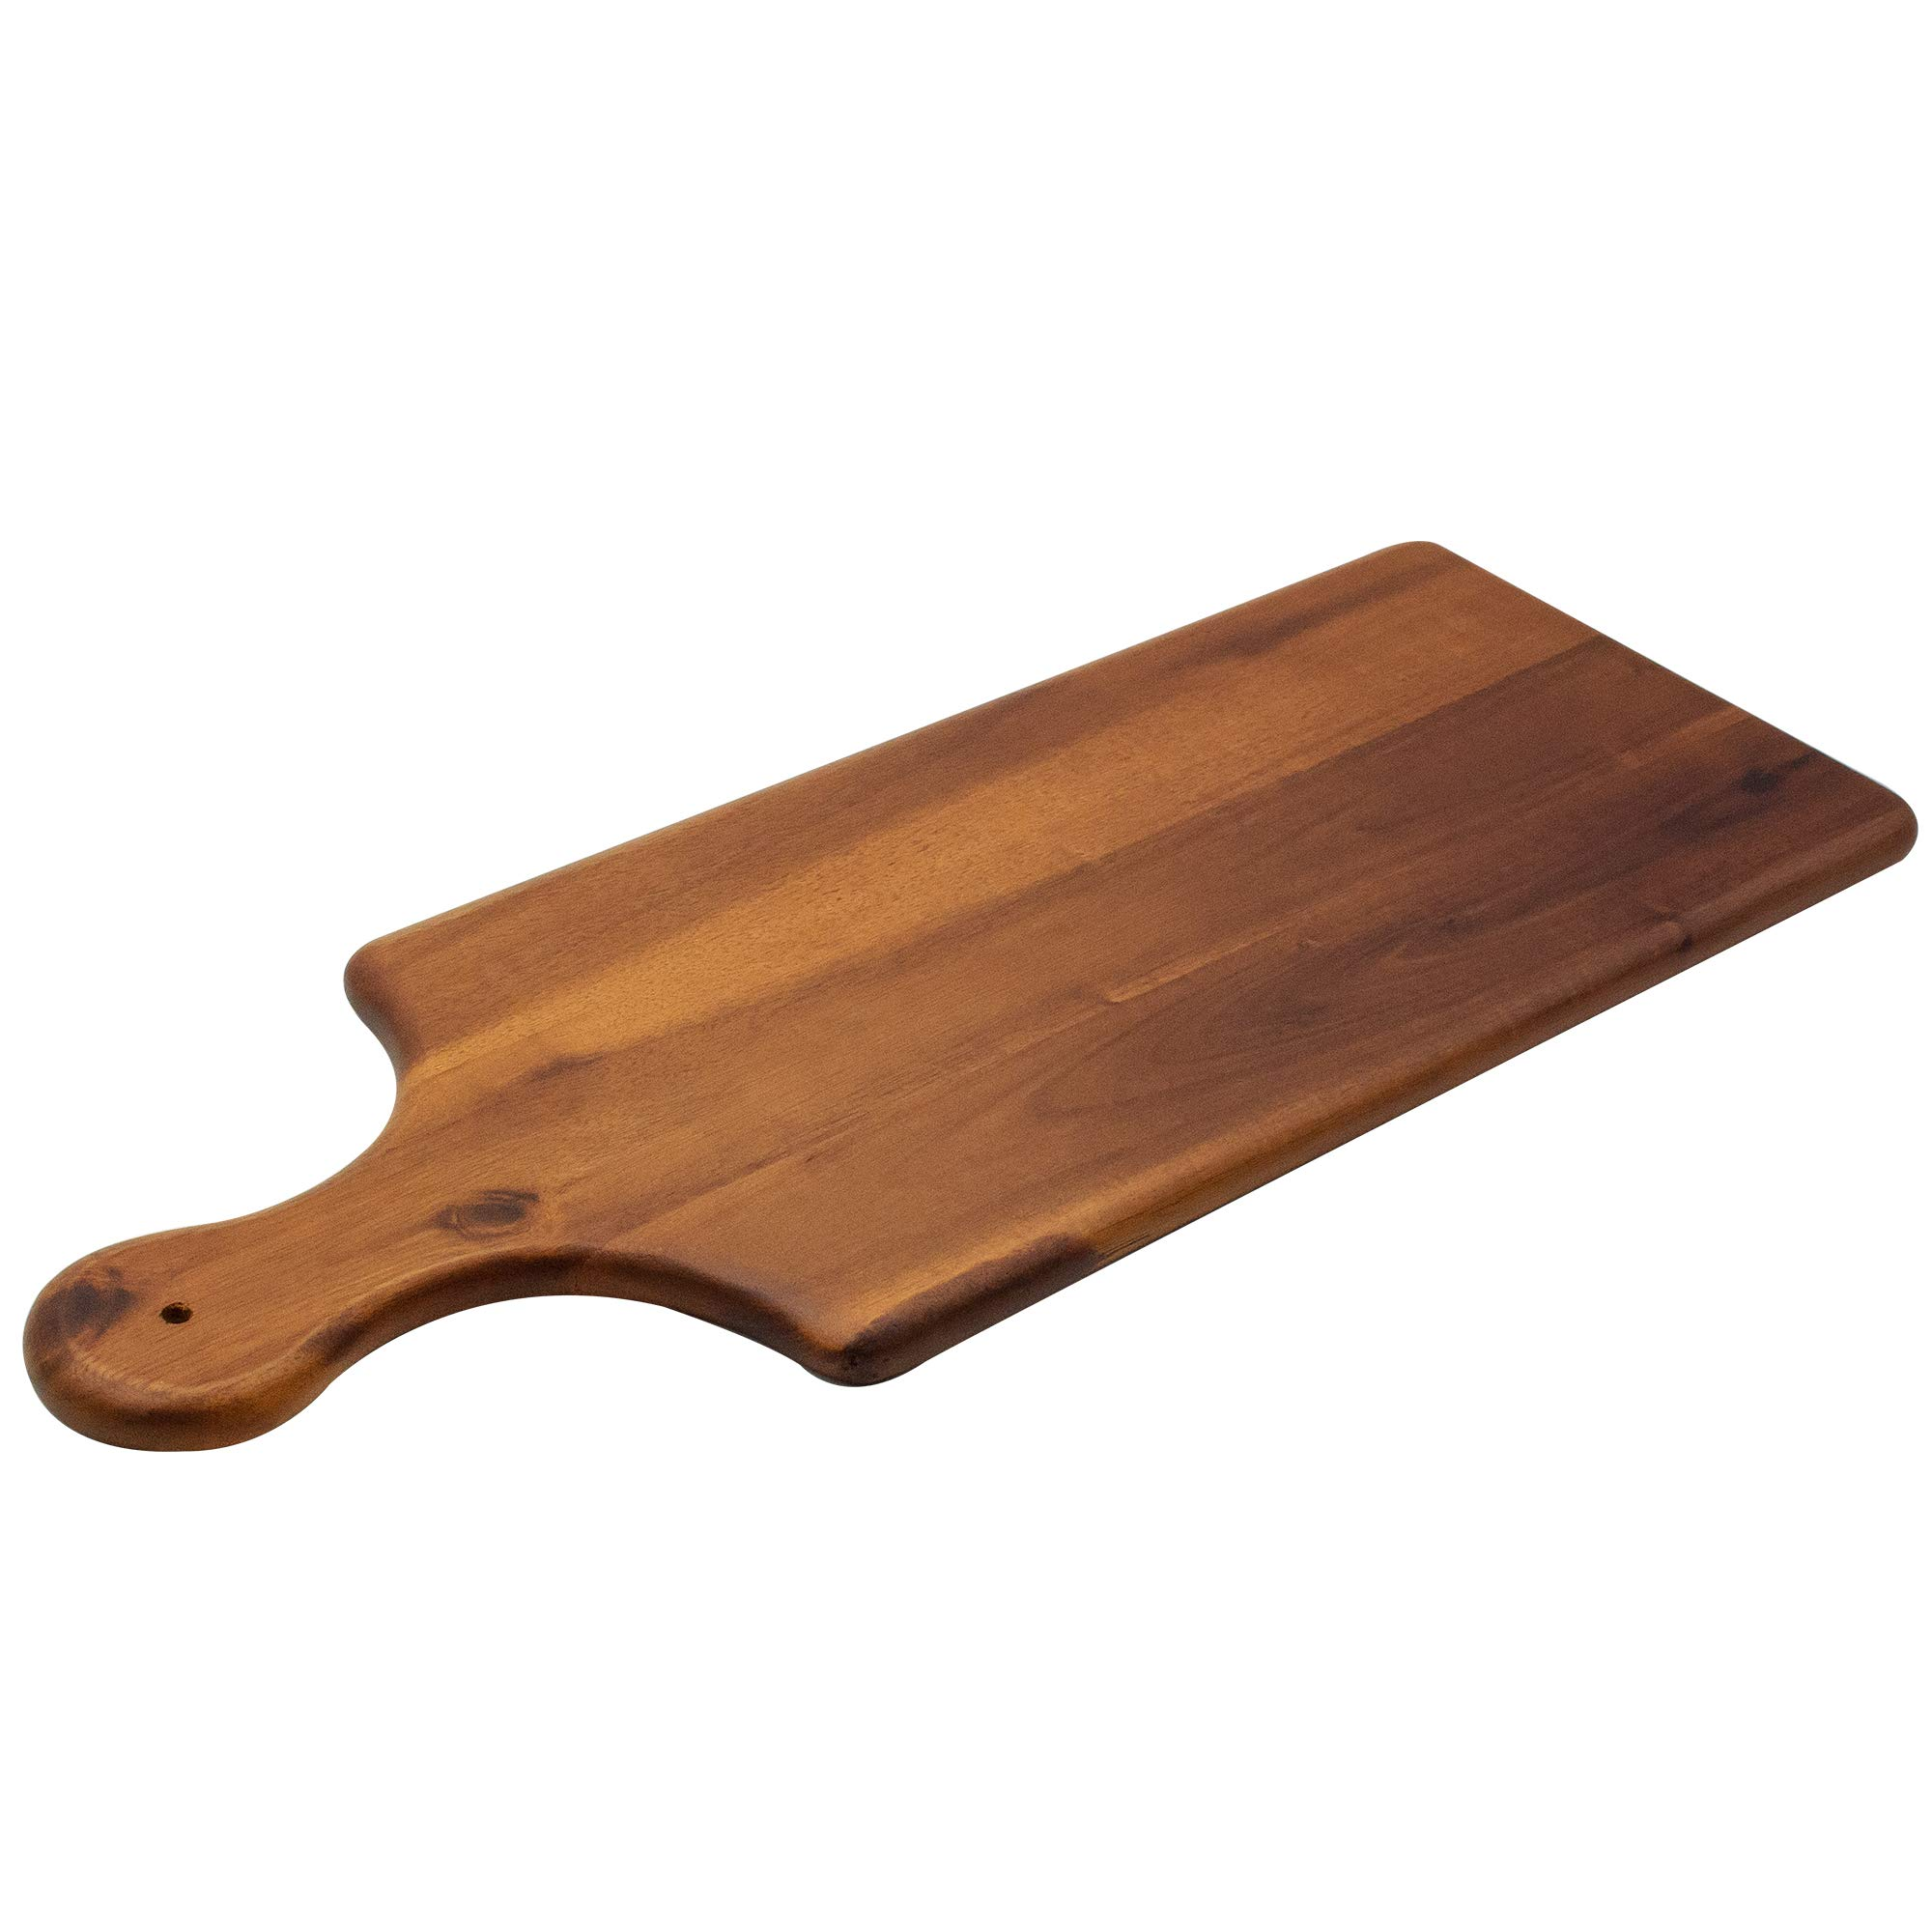 AIDEA Acacia Wood Serving Paddle Board - Reversible Wooden Cheese Board 17 Inch by AIDEA (Image #4)